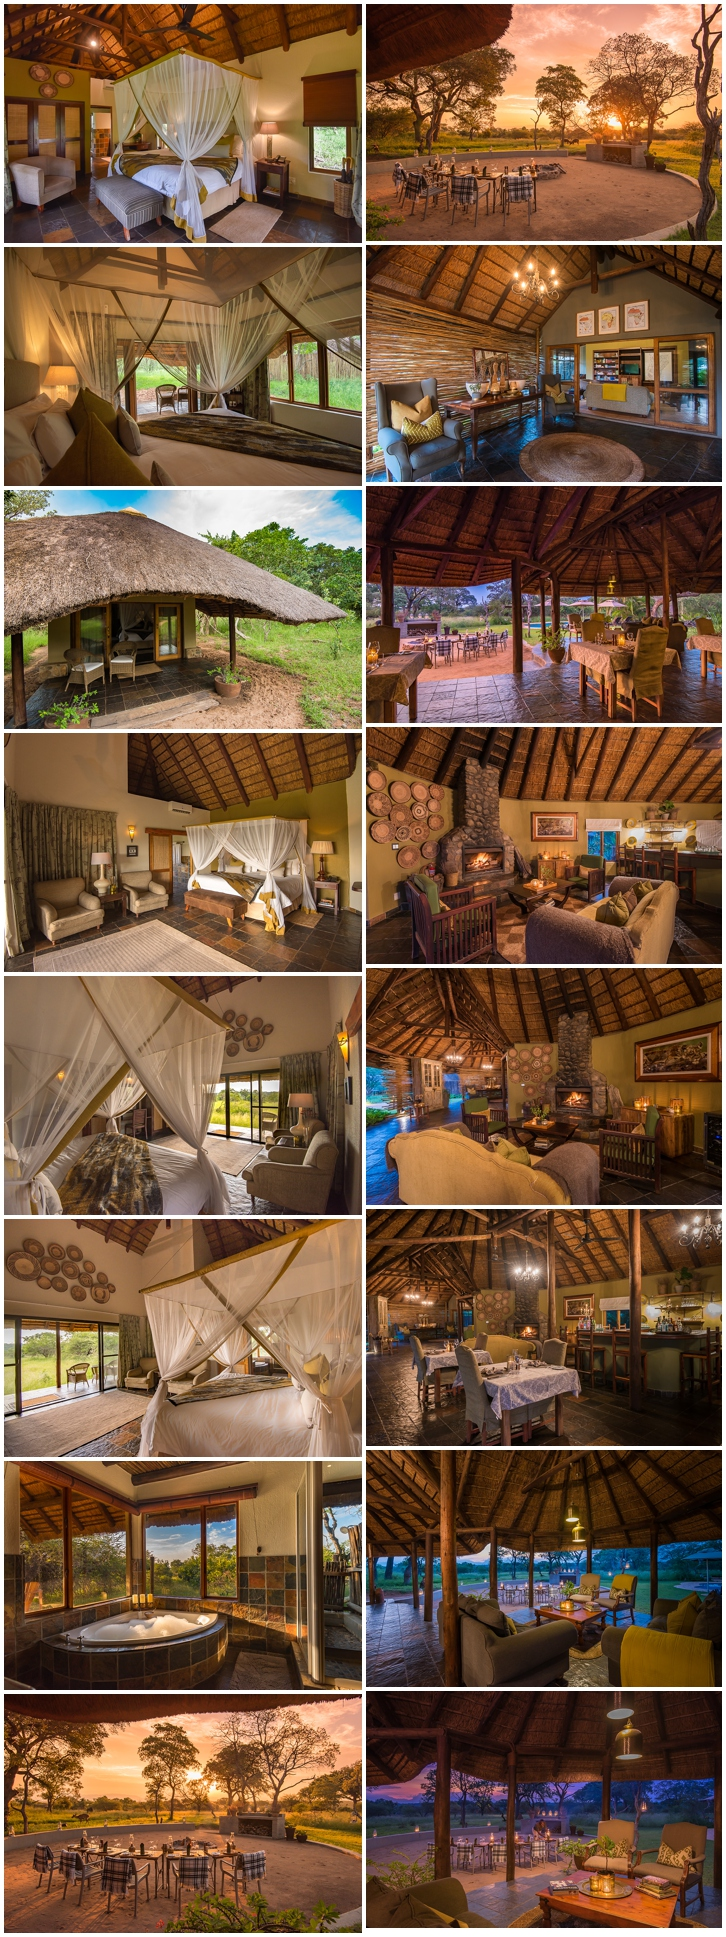 South African lodge and interior photography